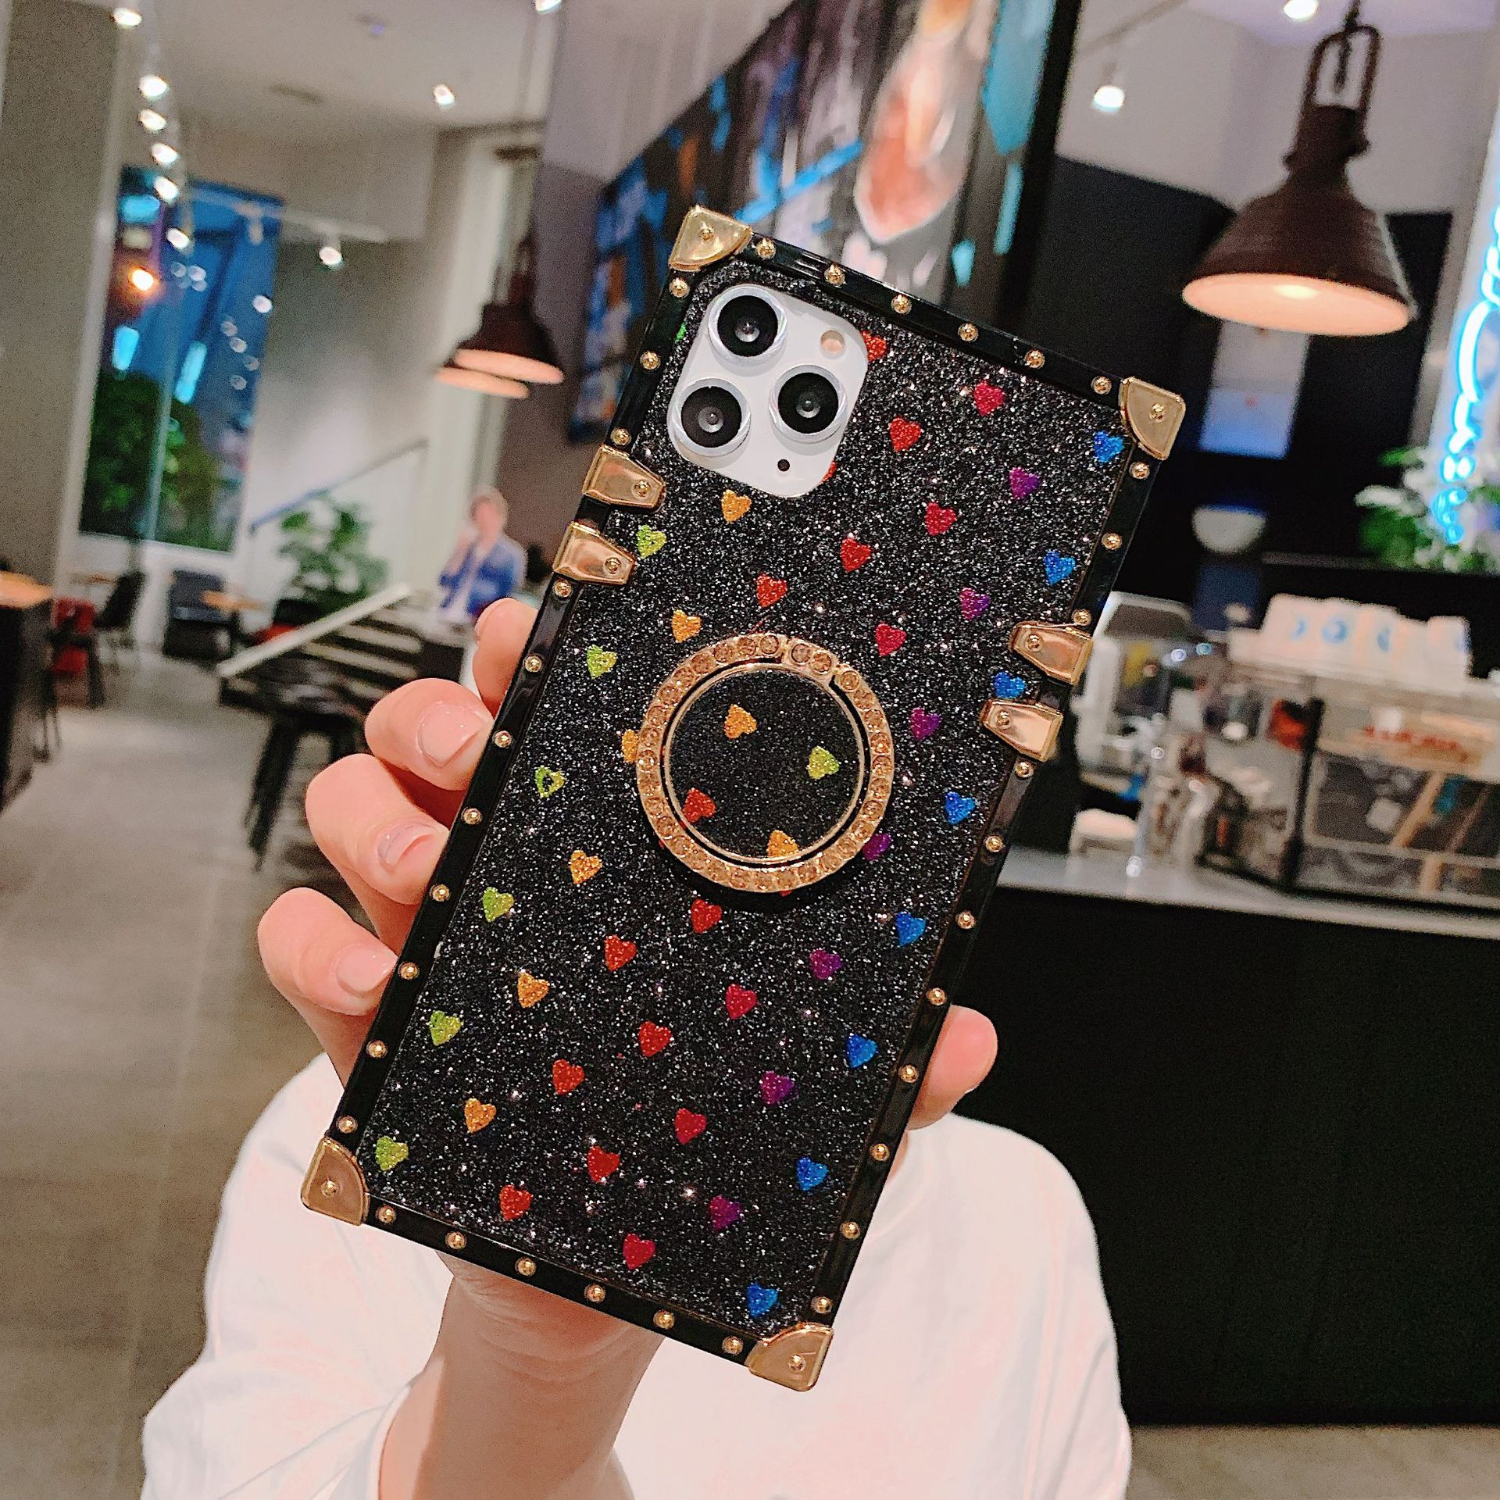 YXAYN 3D fashion luxury mobile shell Square Glitter For iPhone 7 8 Plus X XR XS 11 11